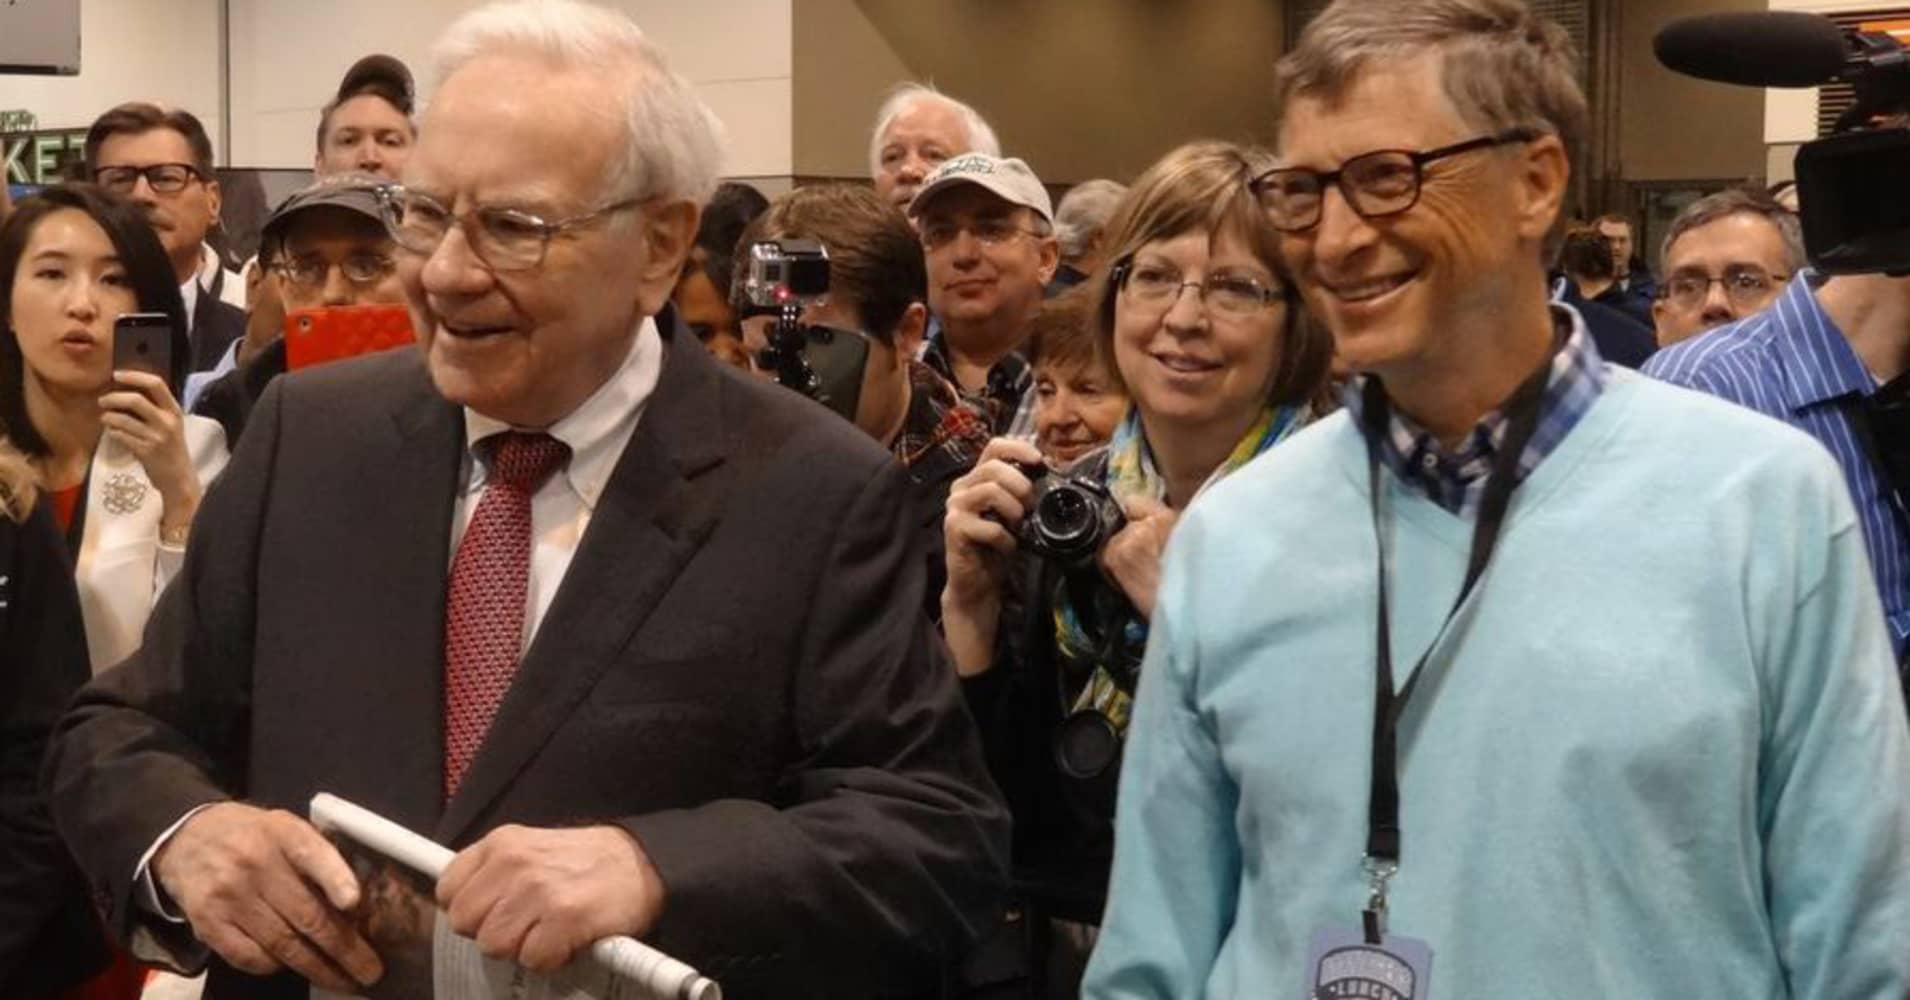 Warren Buffett and Bill Gates prepare to do the 'newspaper toss' at the Berkshire Hathaway Annual Shareholder's Meeting in Omaha, Nebraska.